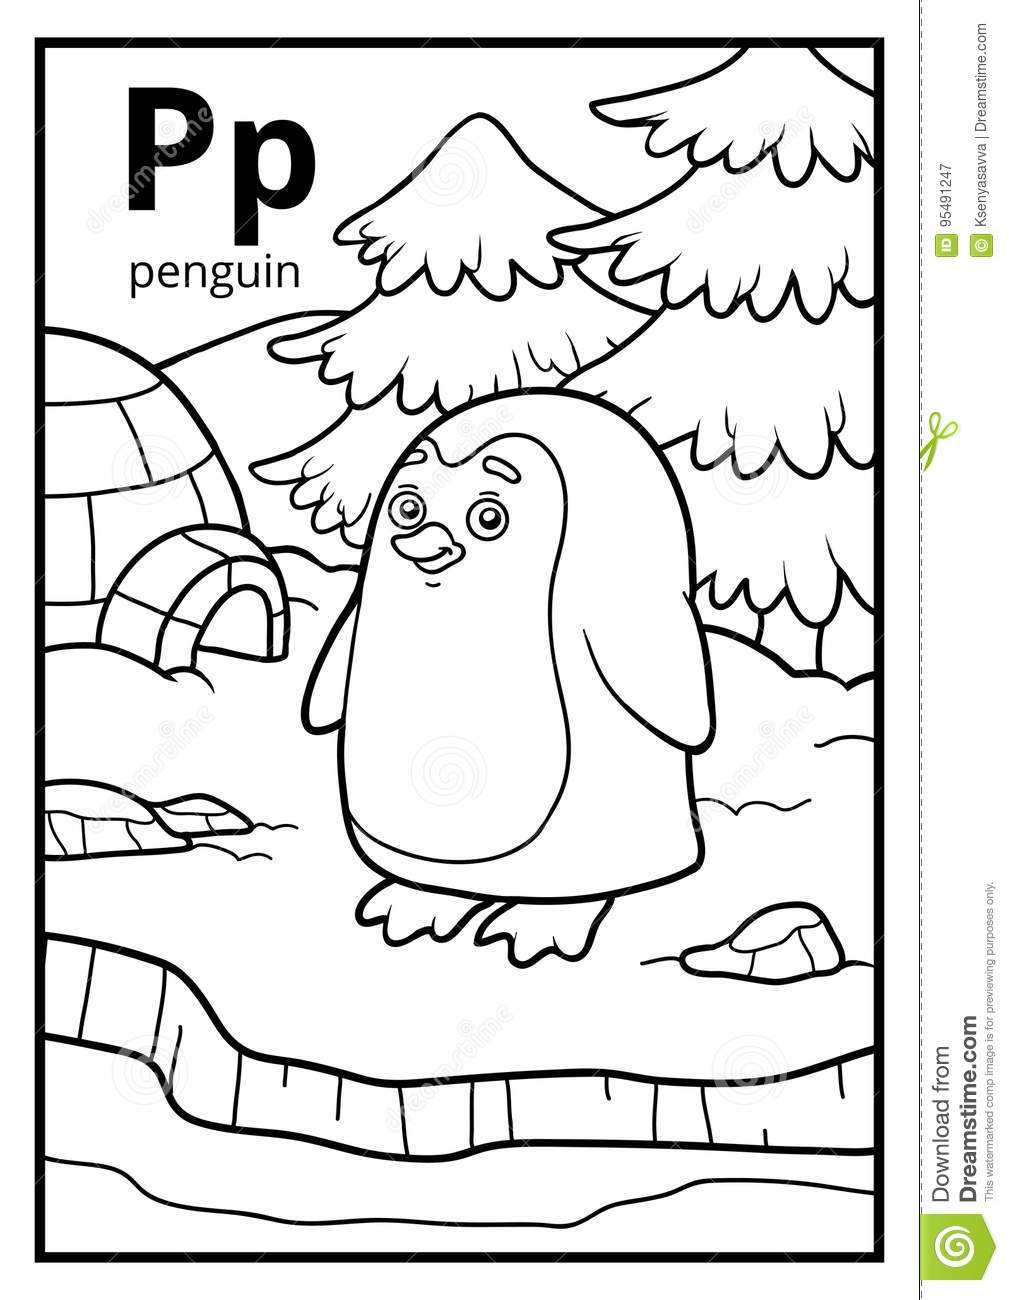 Coloring Book, Colorless Alphabet. Letter P, Penguin Stock Vector ...